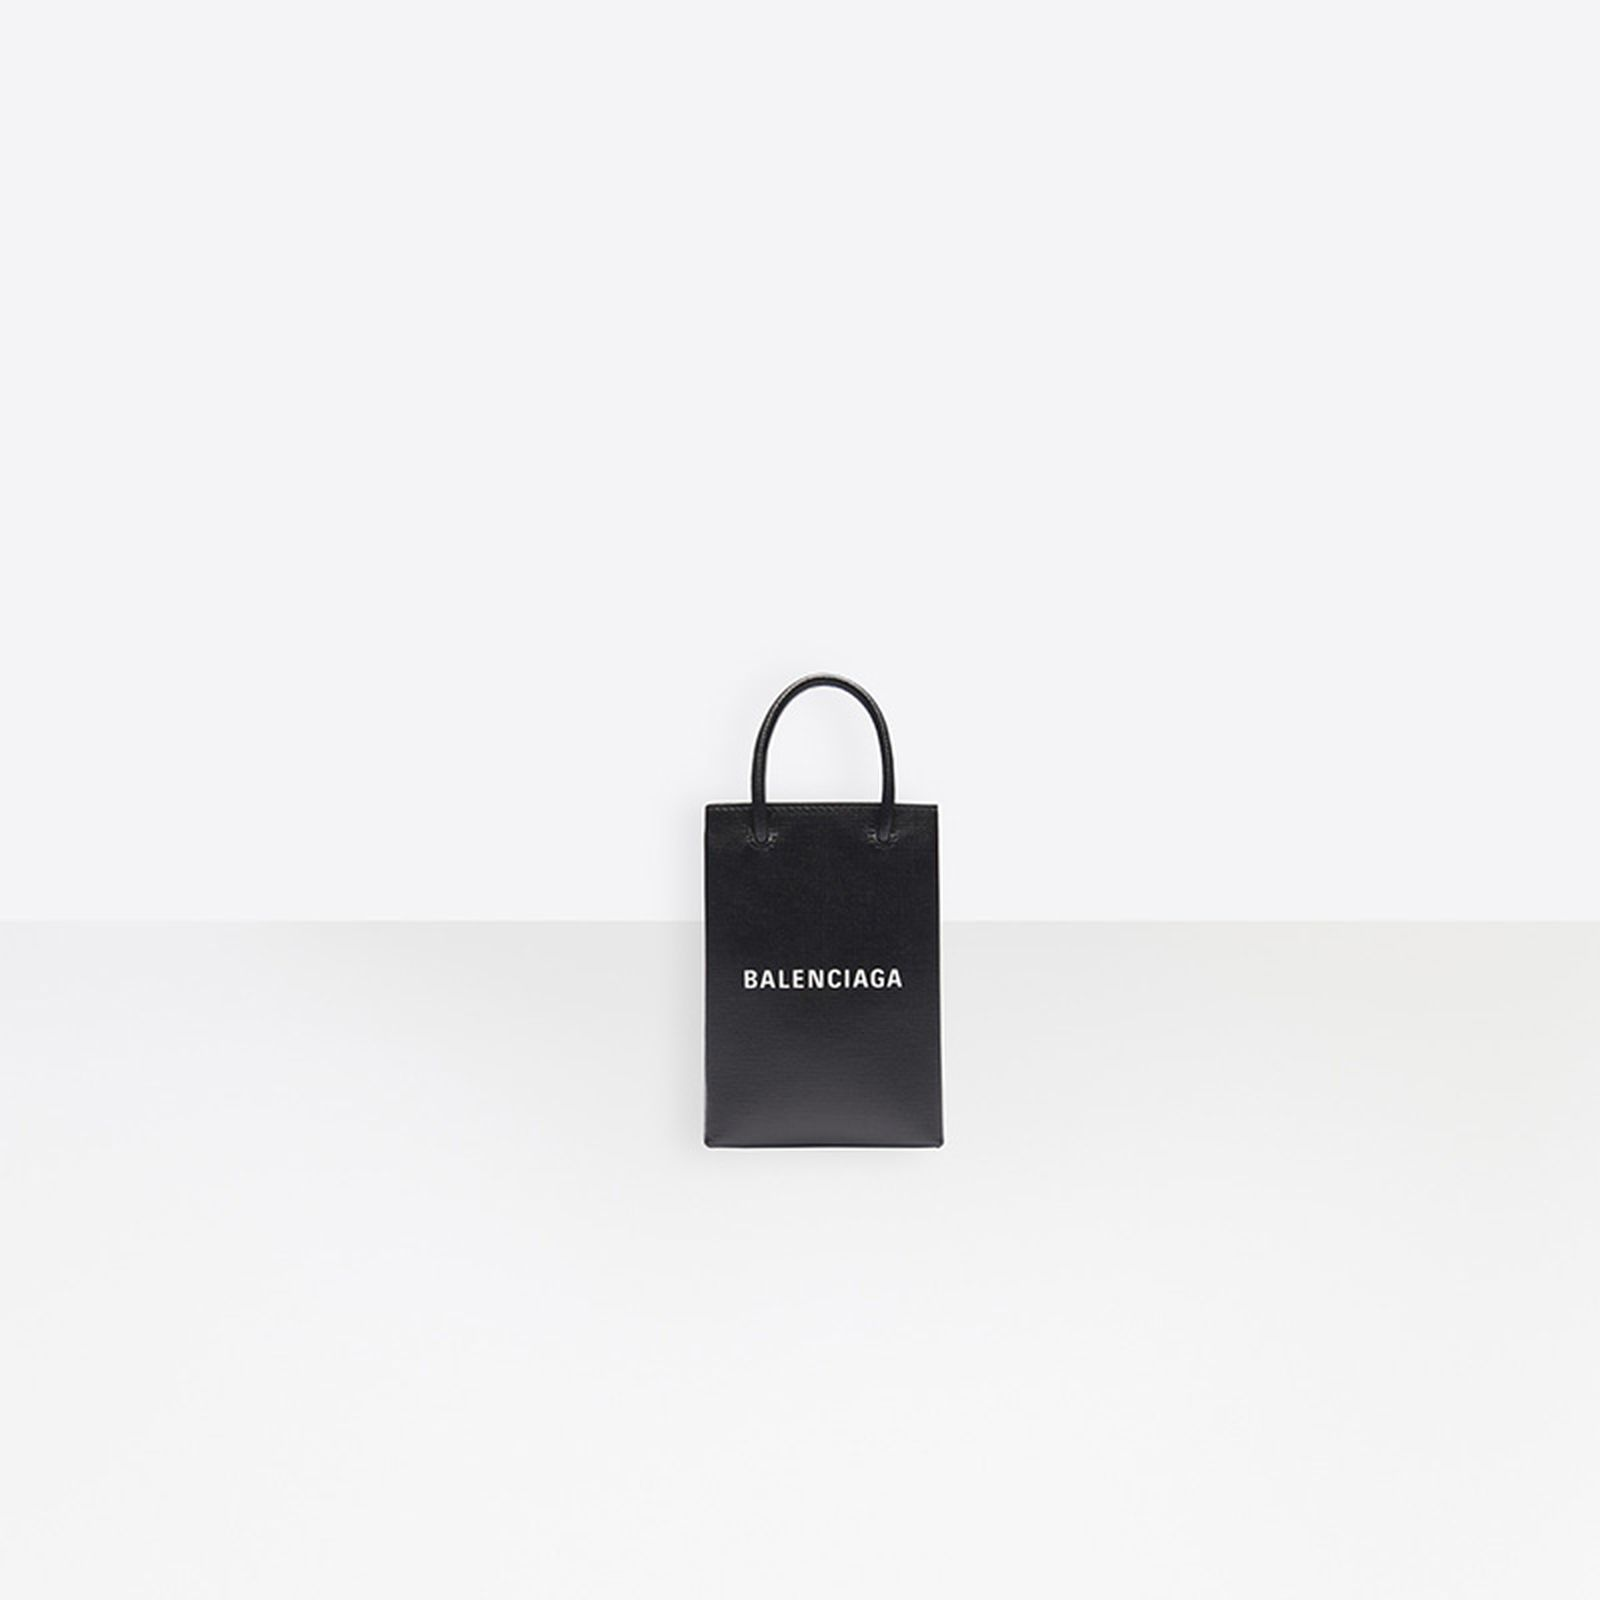 balenciaga phone holder bags